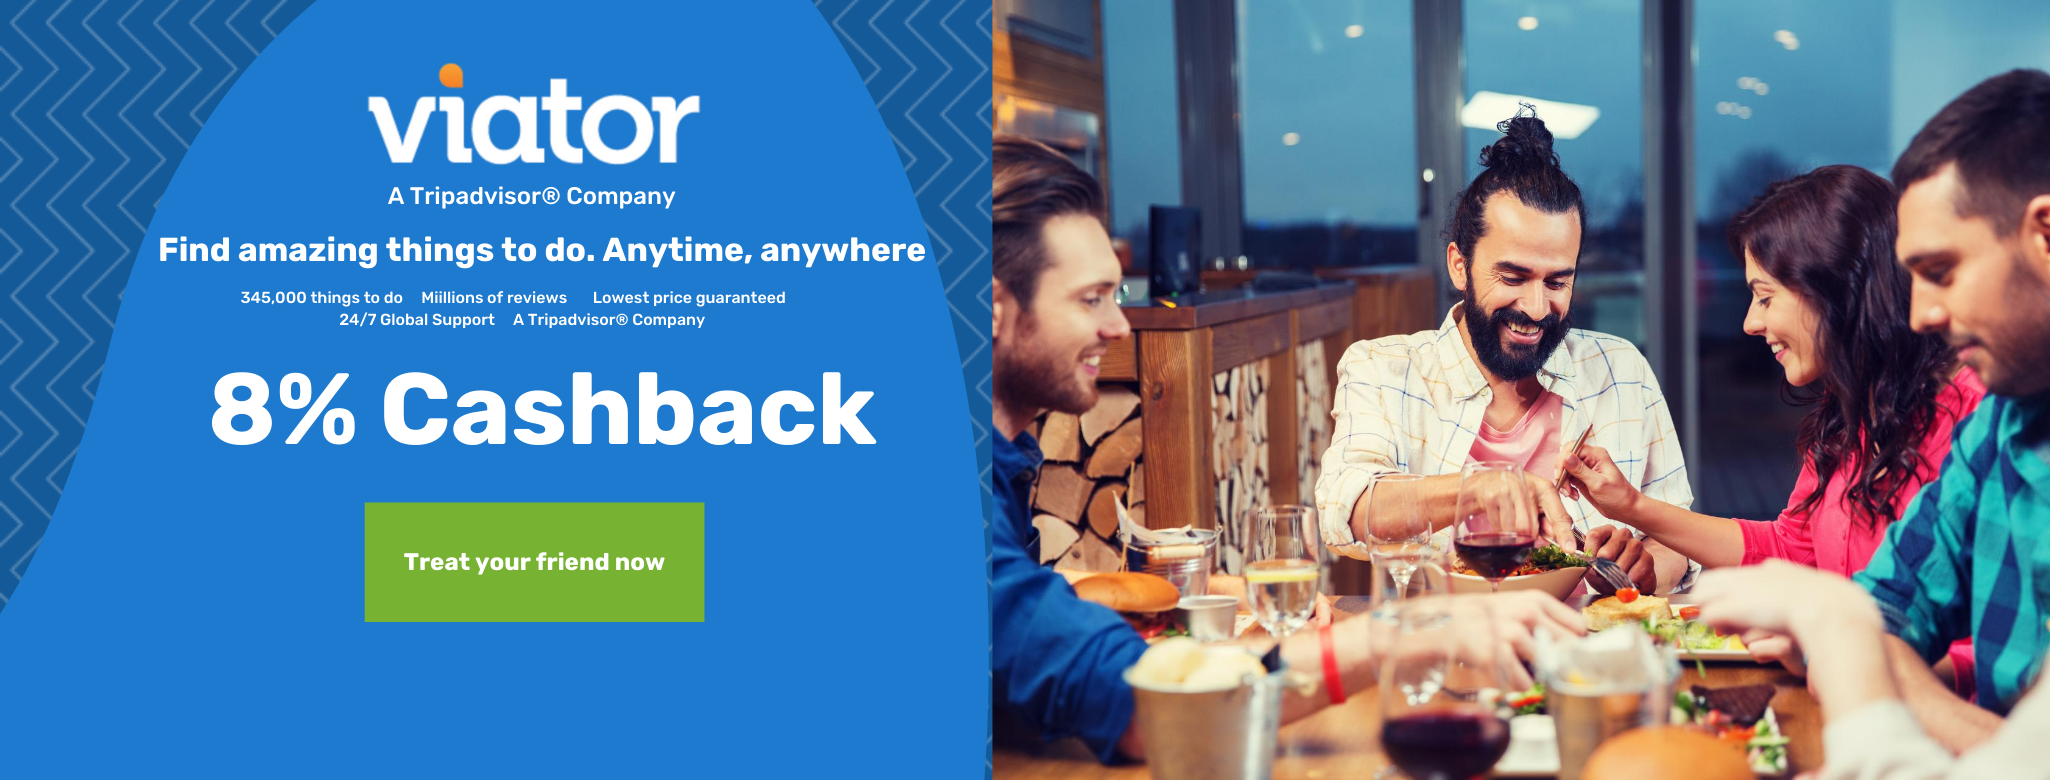 Viator - A Trip Advisor Company up to 8% Cashback